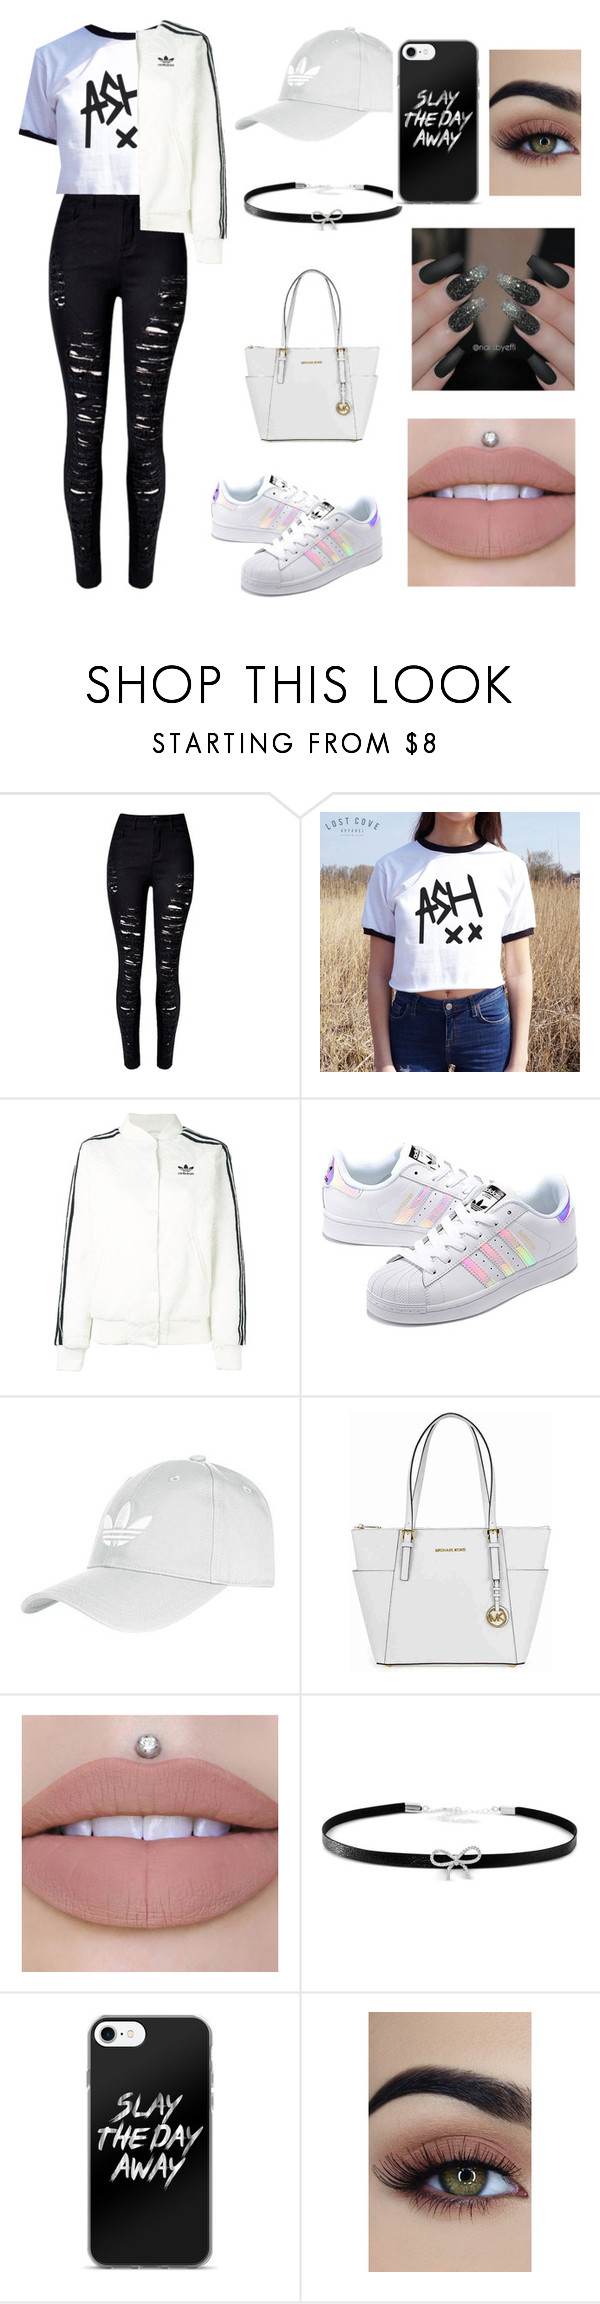 """Weekend Outfit"" by ryleedamnsartorius on Polyvore featuring WithChic, adidas Originals, Topshop, Michael Kors and Giani Bernini"